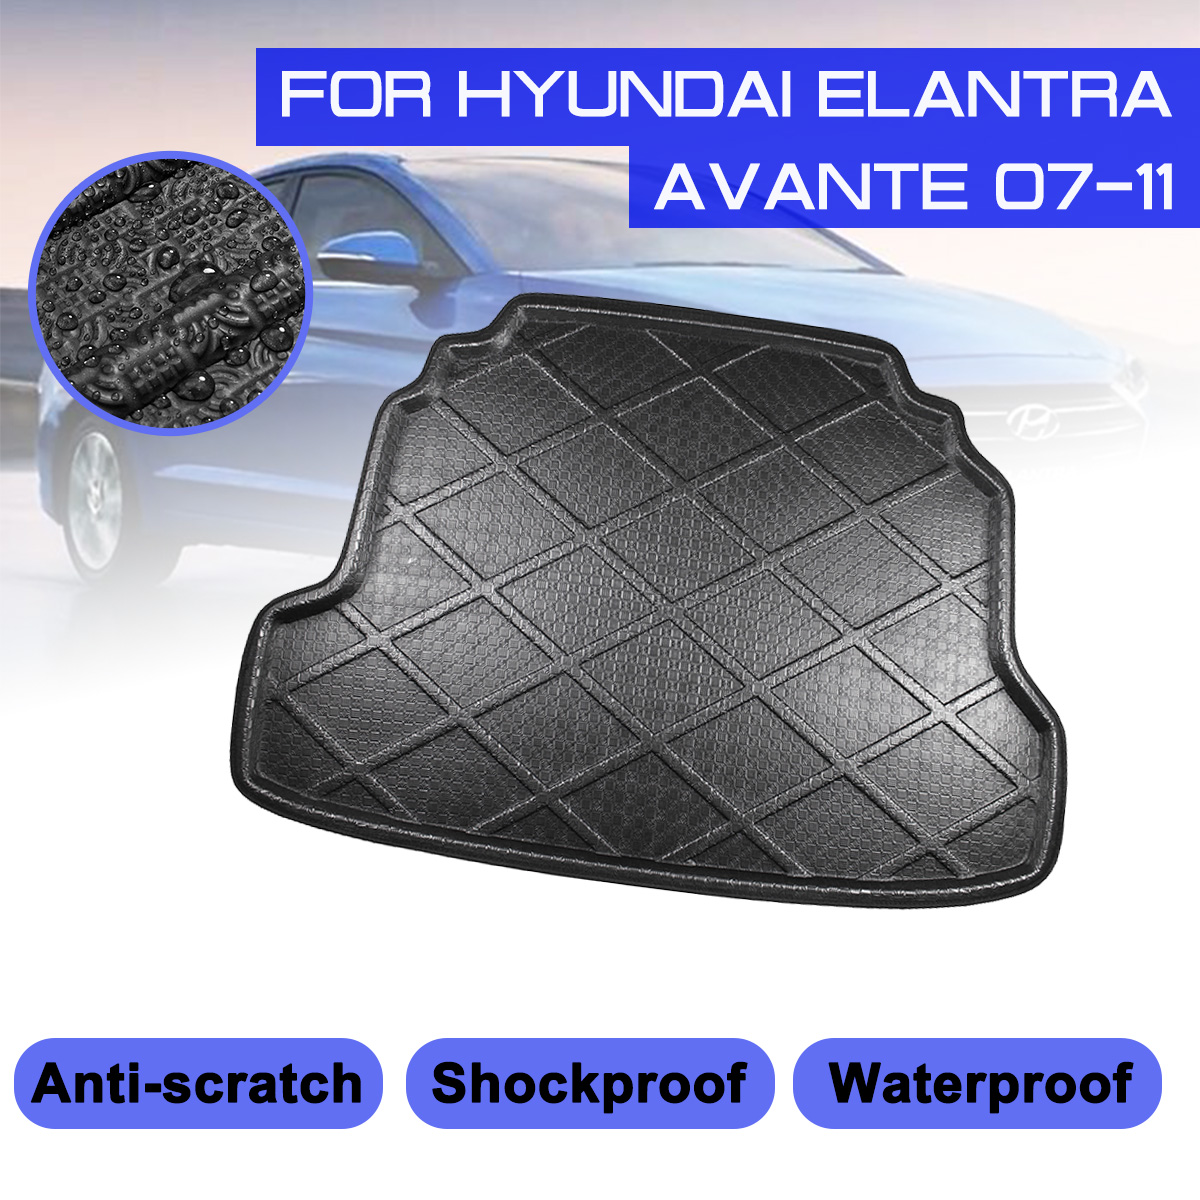 For Hyundai Elantra Avante 2007-2011 Car Rear Trunk Boot Mat Waterproof Floor Mats Carpet Anti Mud Tray Cargo Liner